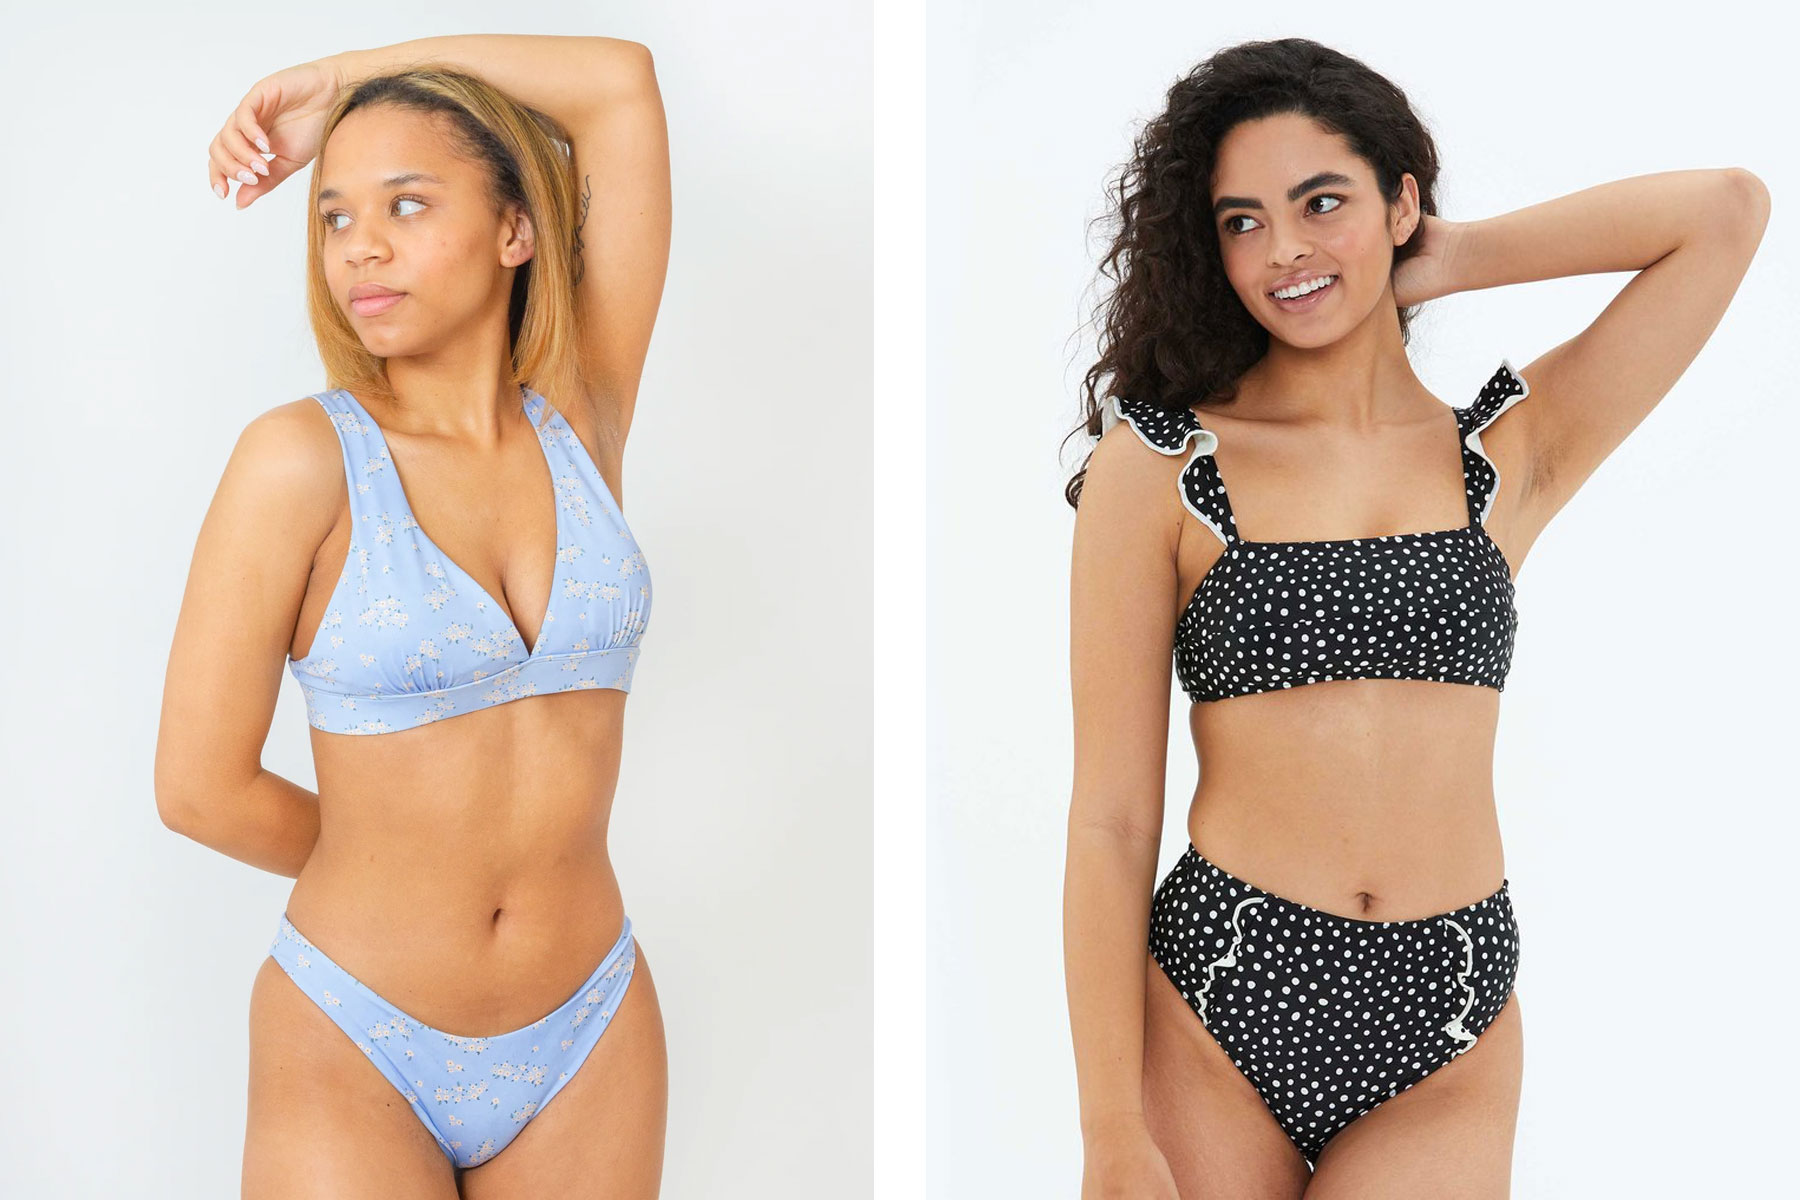 Women wearing blue floral and black polka dot swimsuits